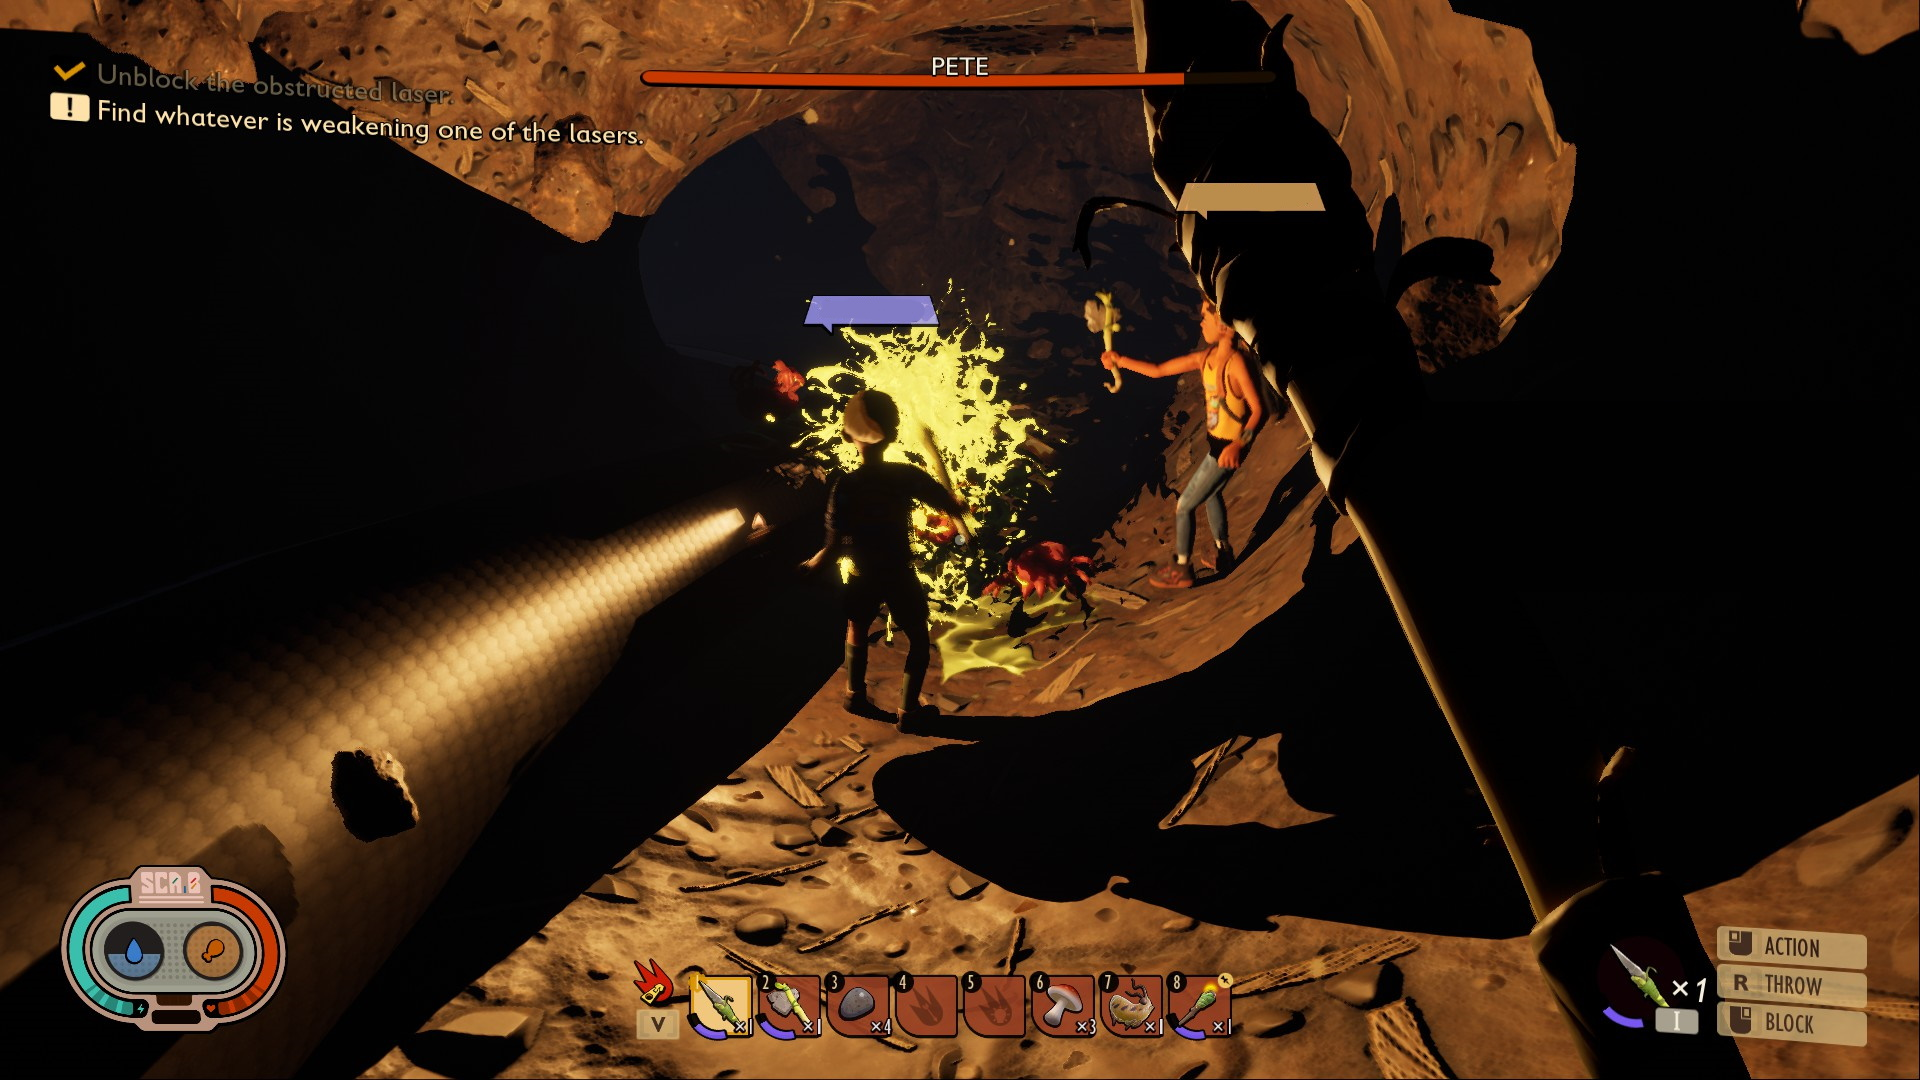 I watch as another player jabs a spear at a bug, which is exploding in green goo. Another player stands nearby, illuminating the tunnel we're in with dramatic shadows.